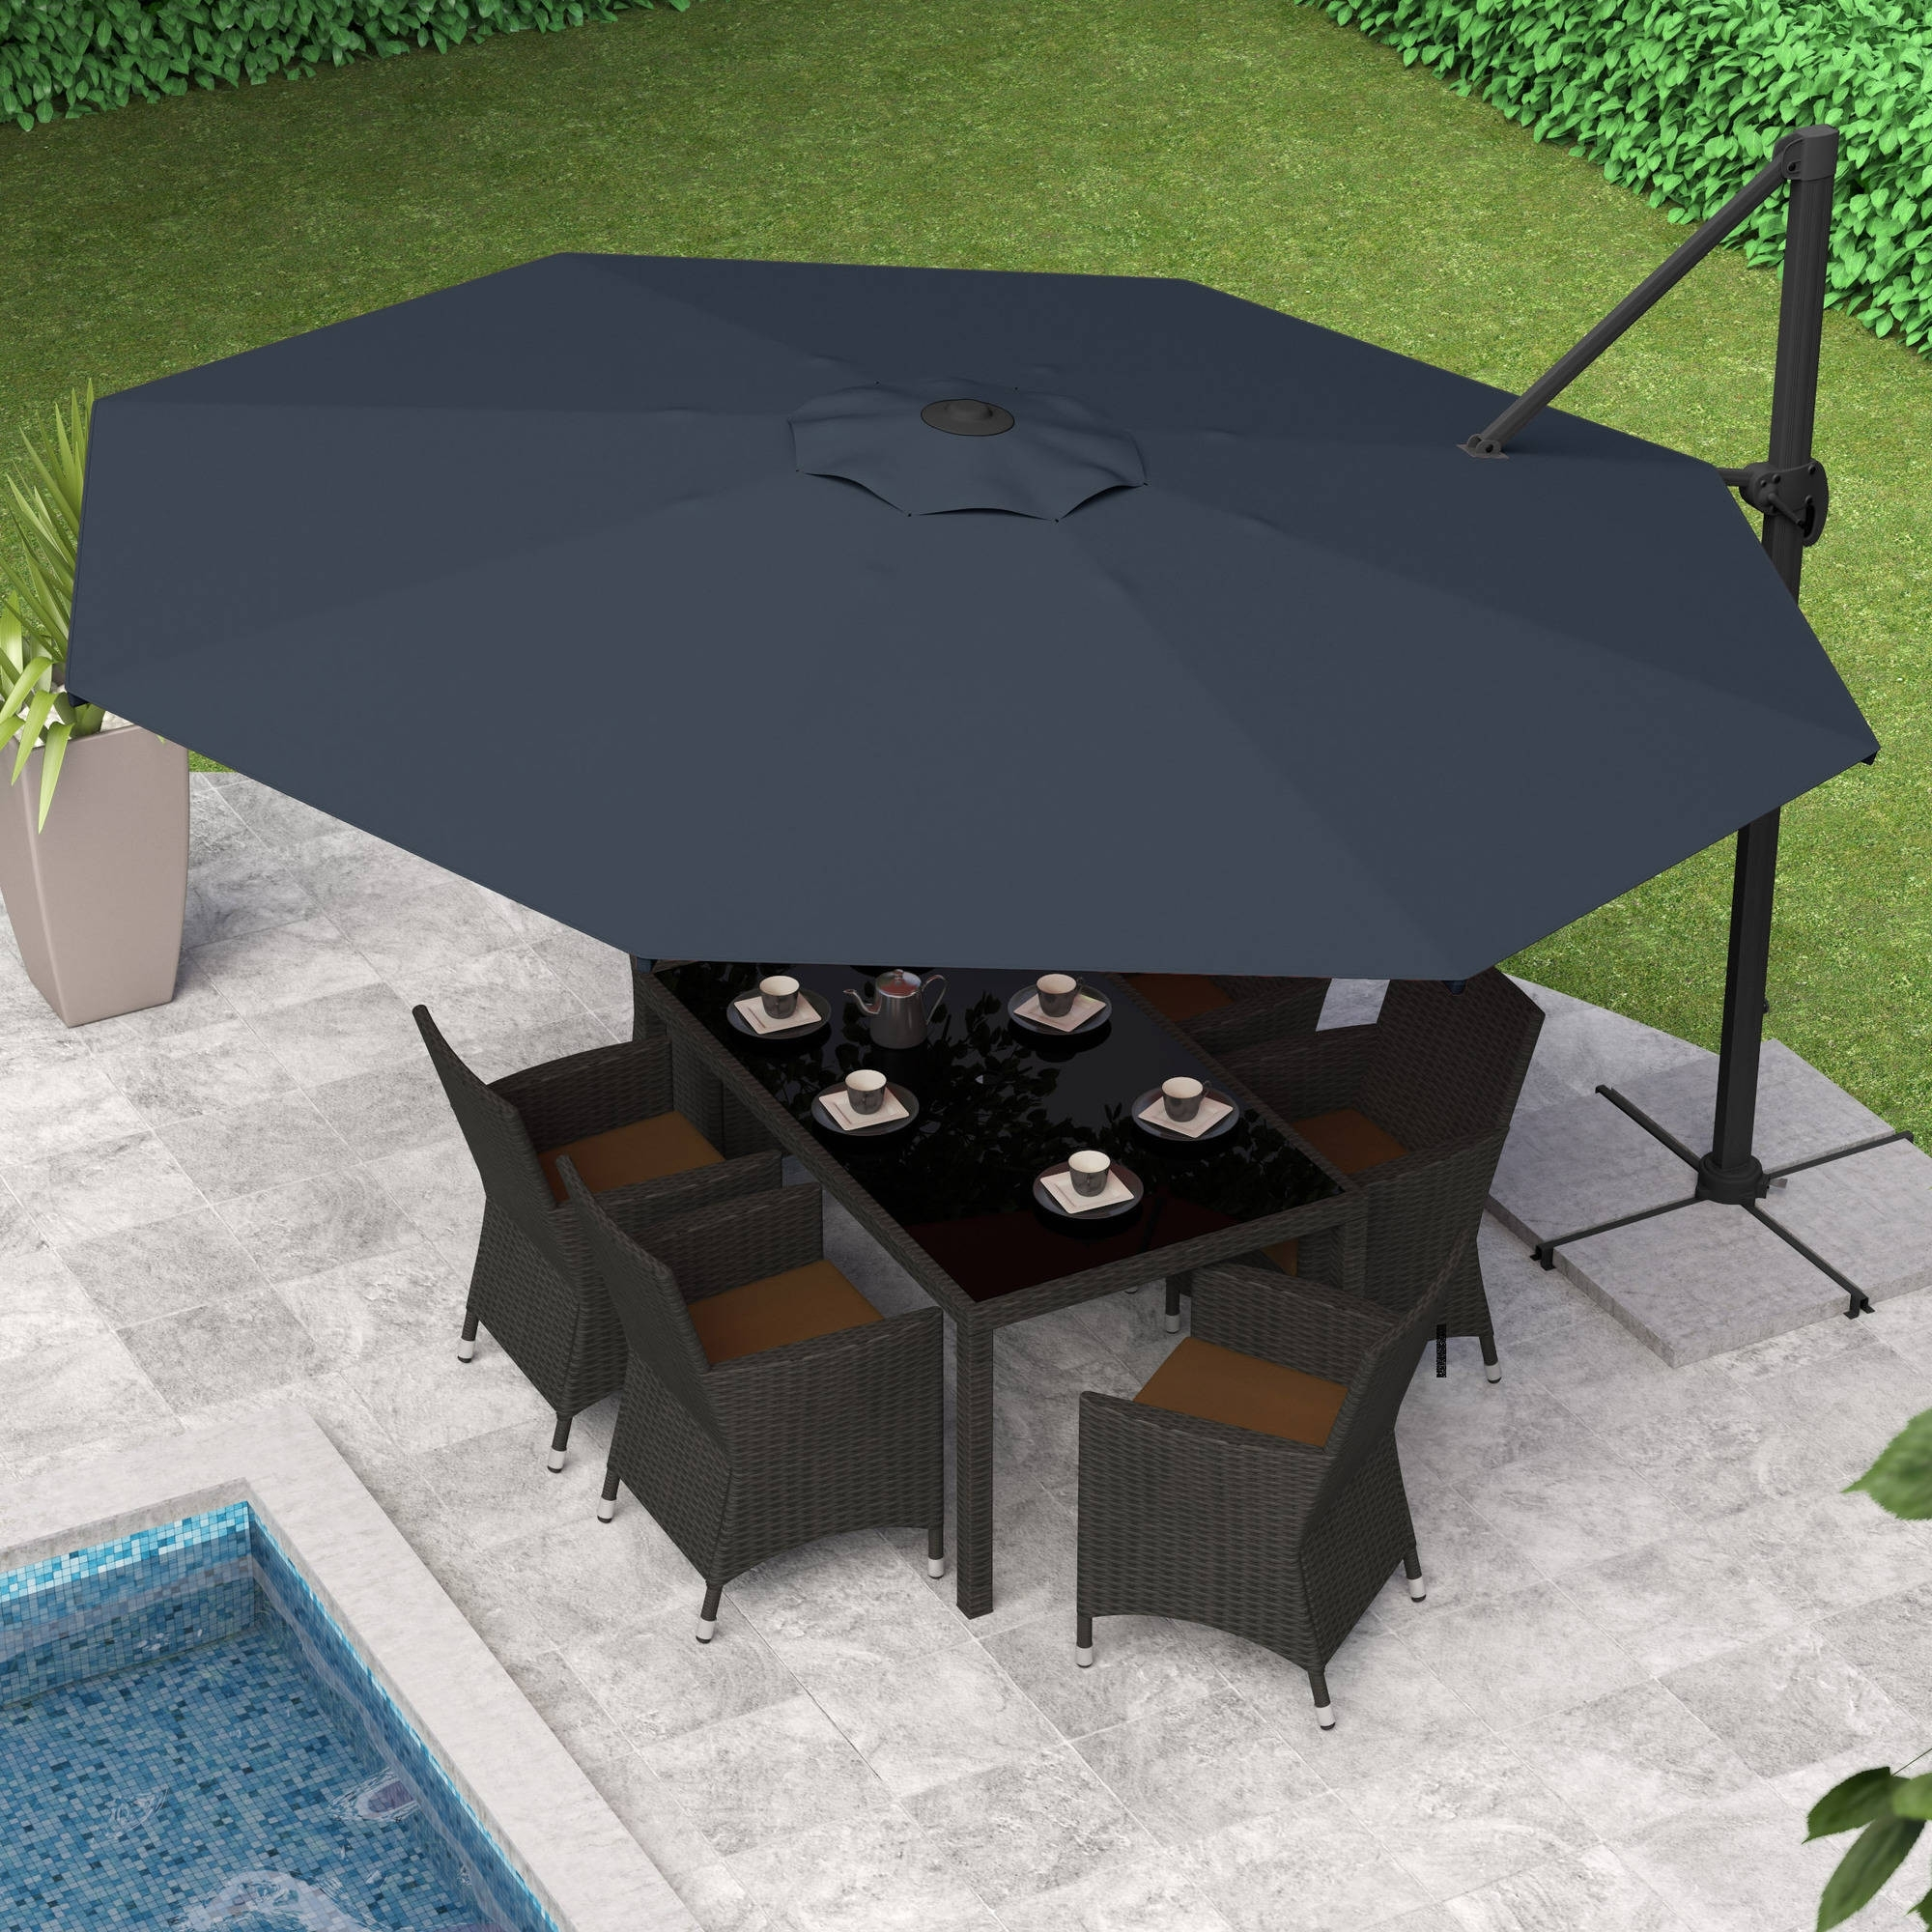 Latest Wayfair Patio Umbrellas Within 17 New Wayfair Patio Furniture Ideas Of Wayfair Outdoor Furniture Sale (View 14 of 20)